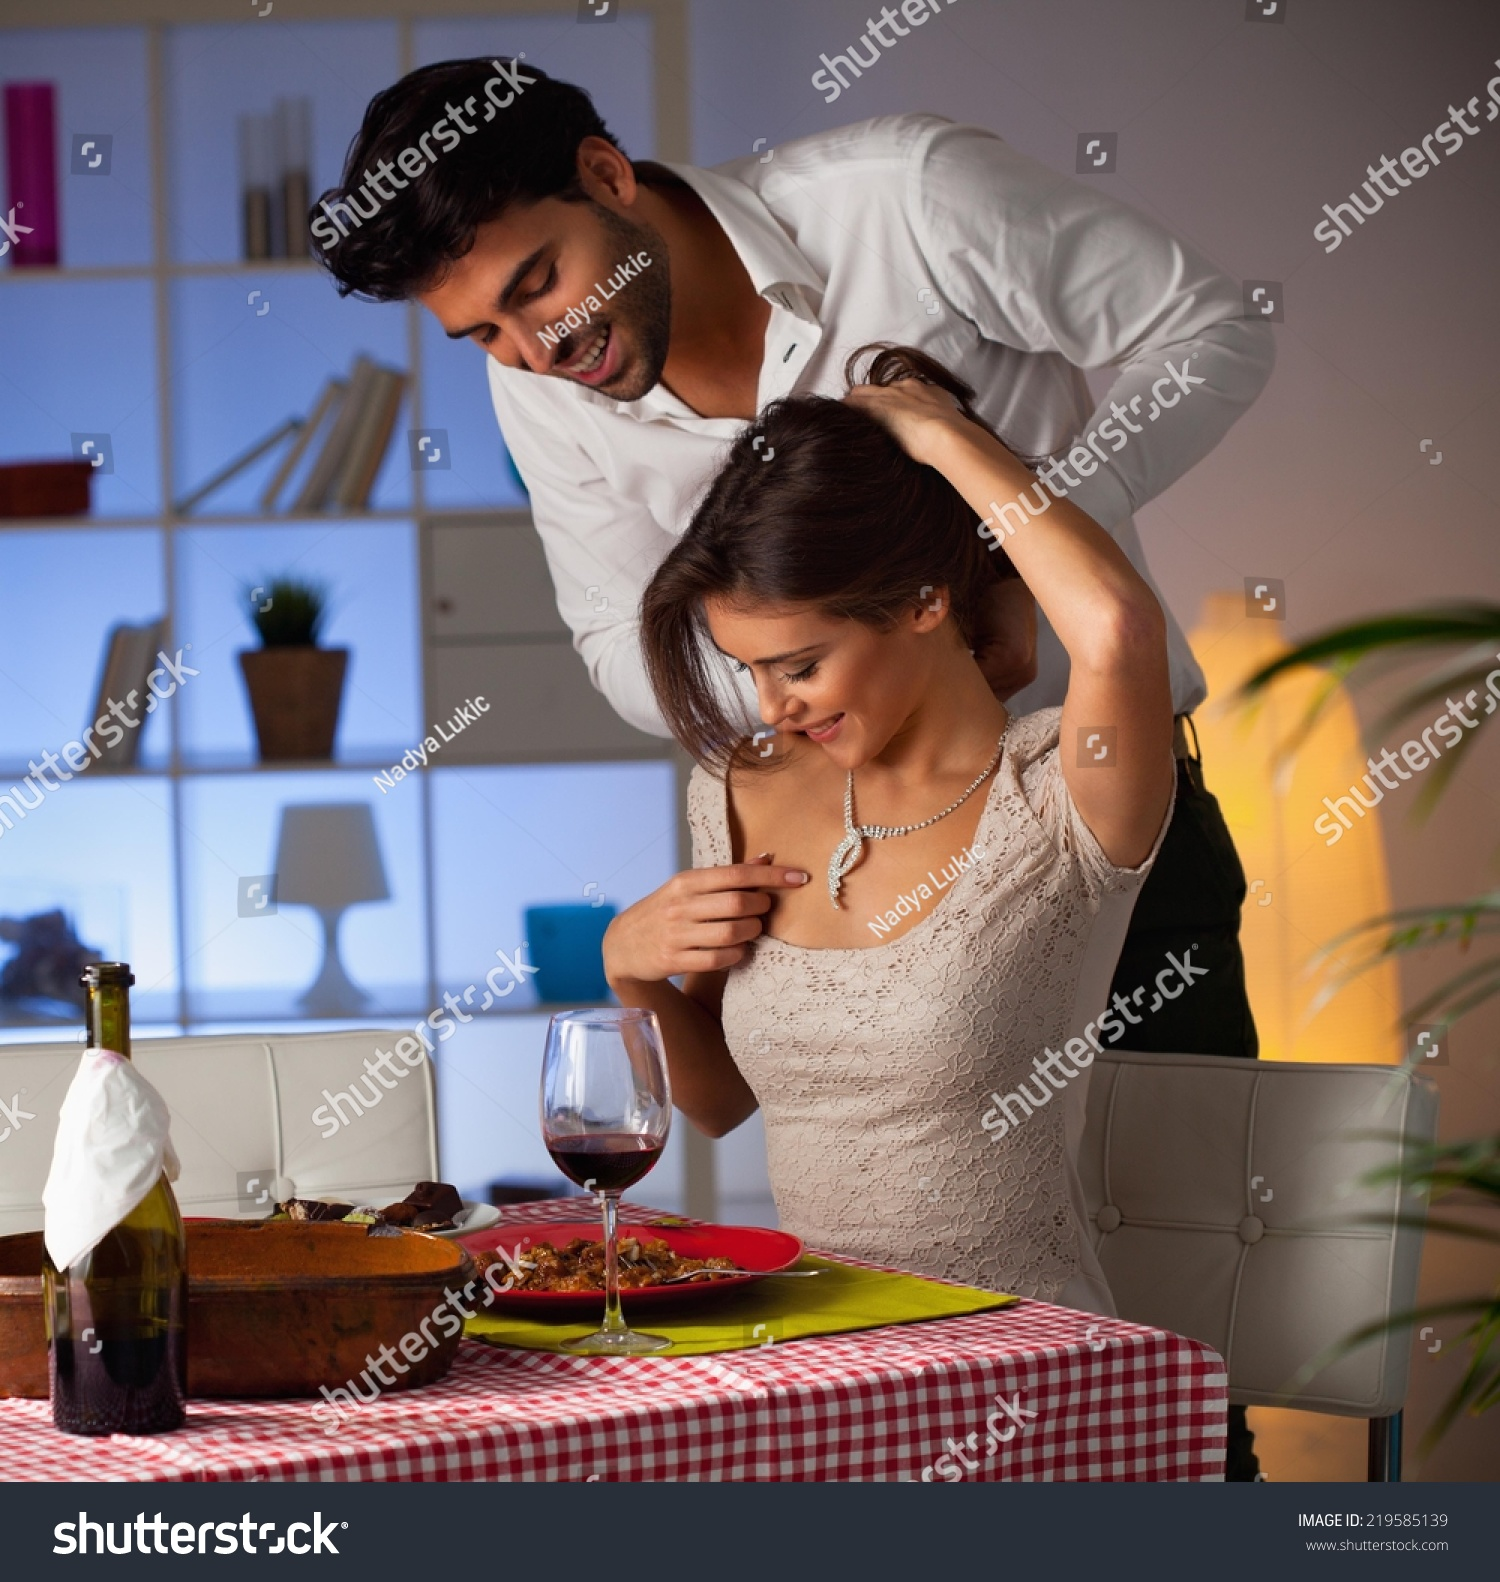 Stock Photo Romantic Couple Stock Image Images Royalty Free